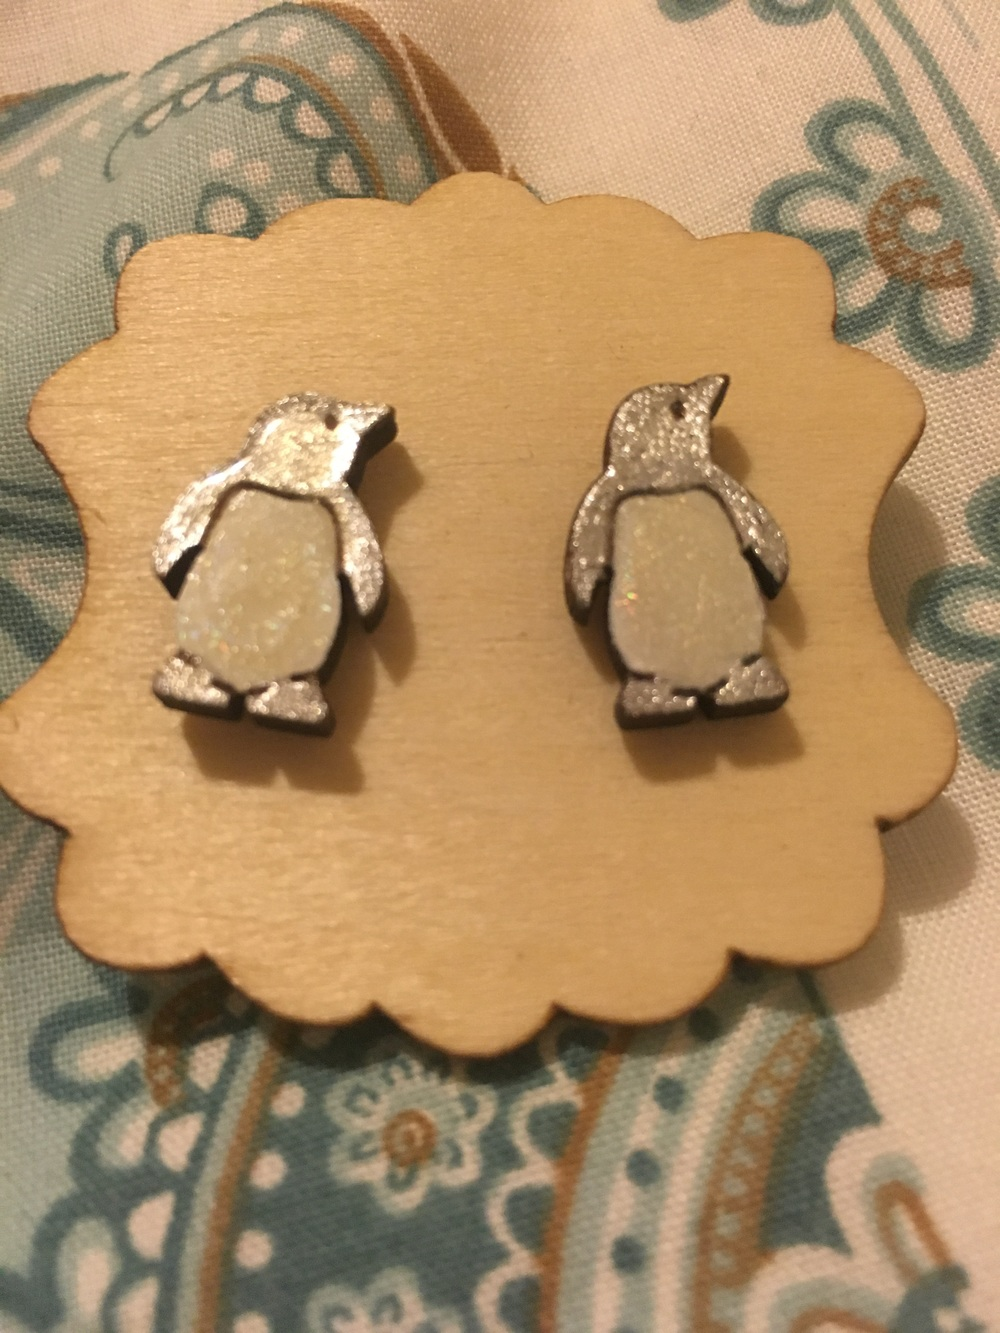 Day 19 & Penguins!